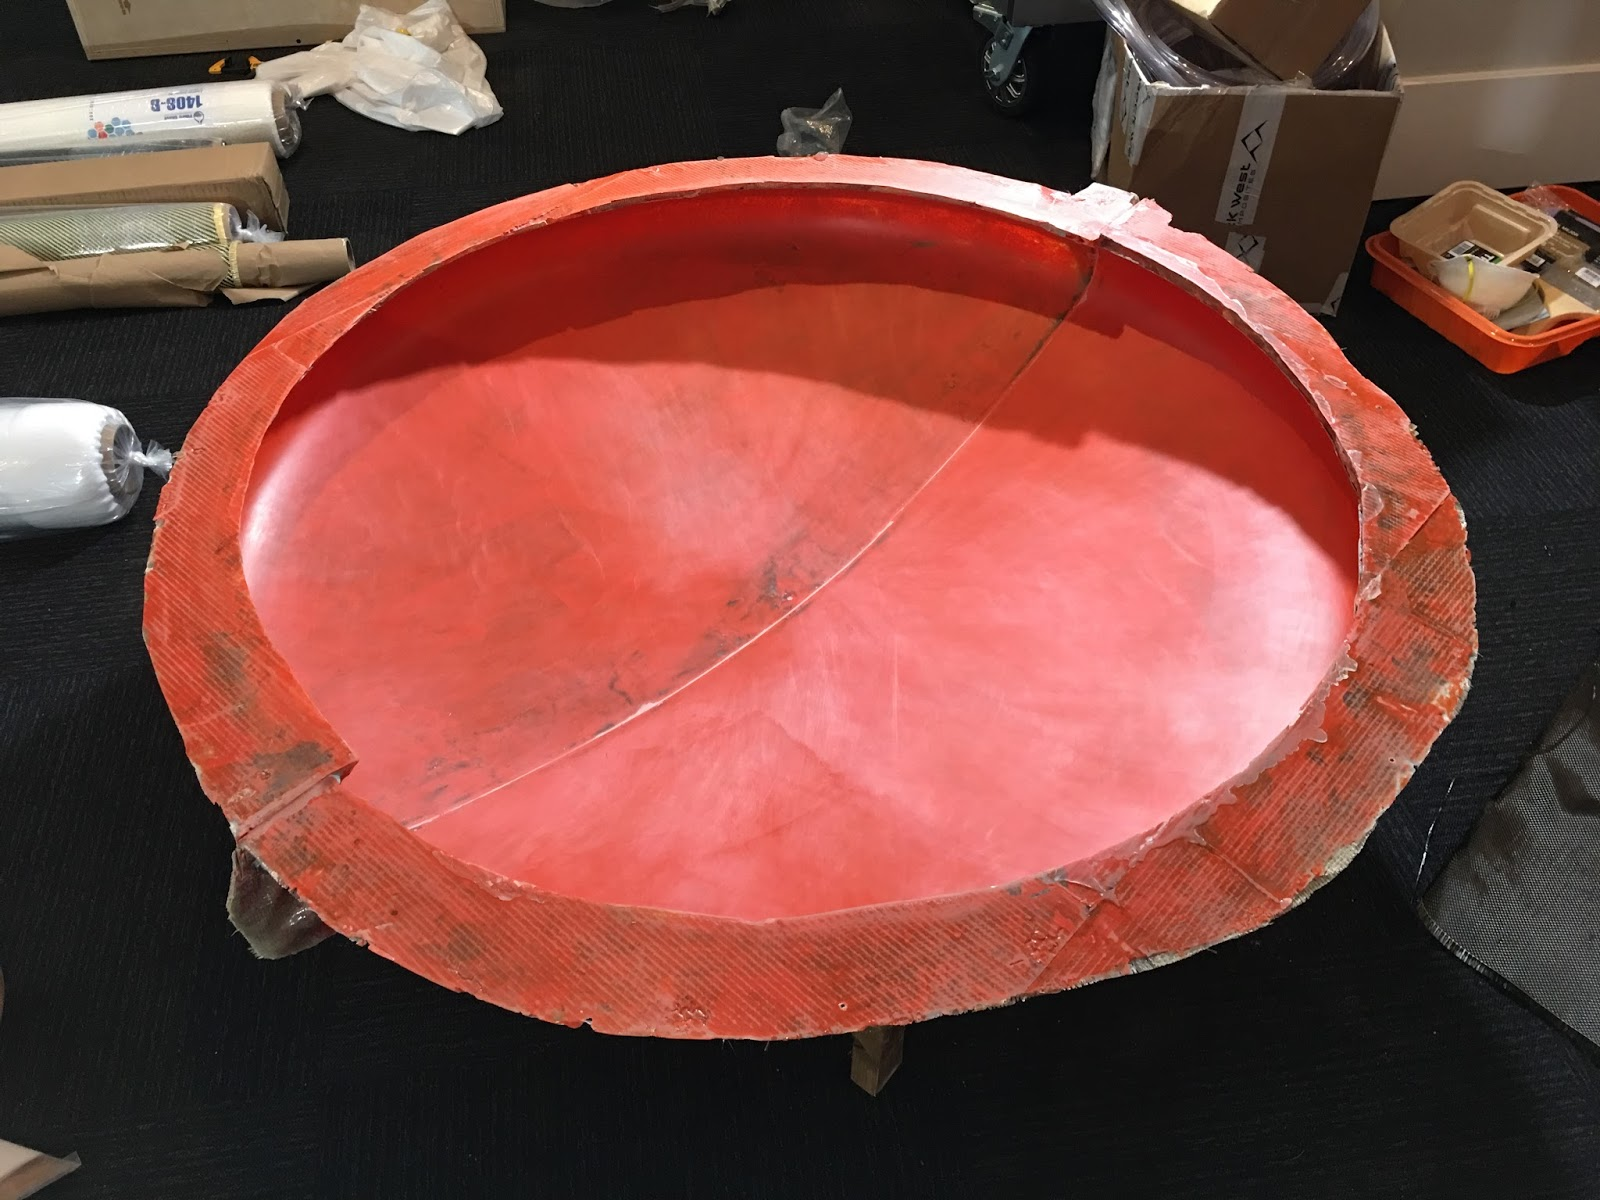 The finished mold surface. Ready for parts. The outside is ugly but the A-surface is pristine. It has it where it counts!